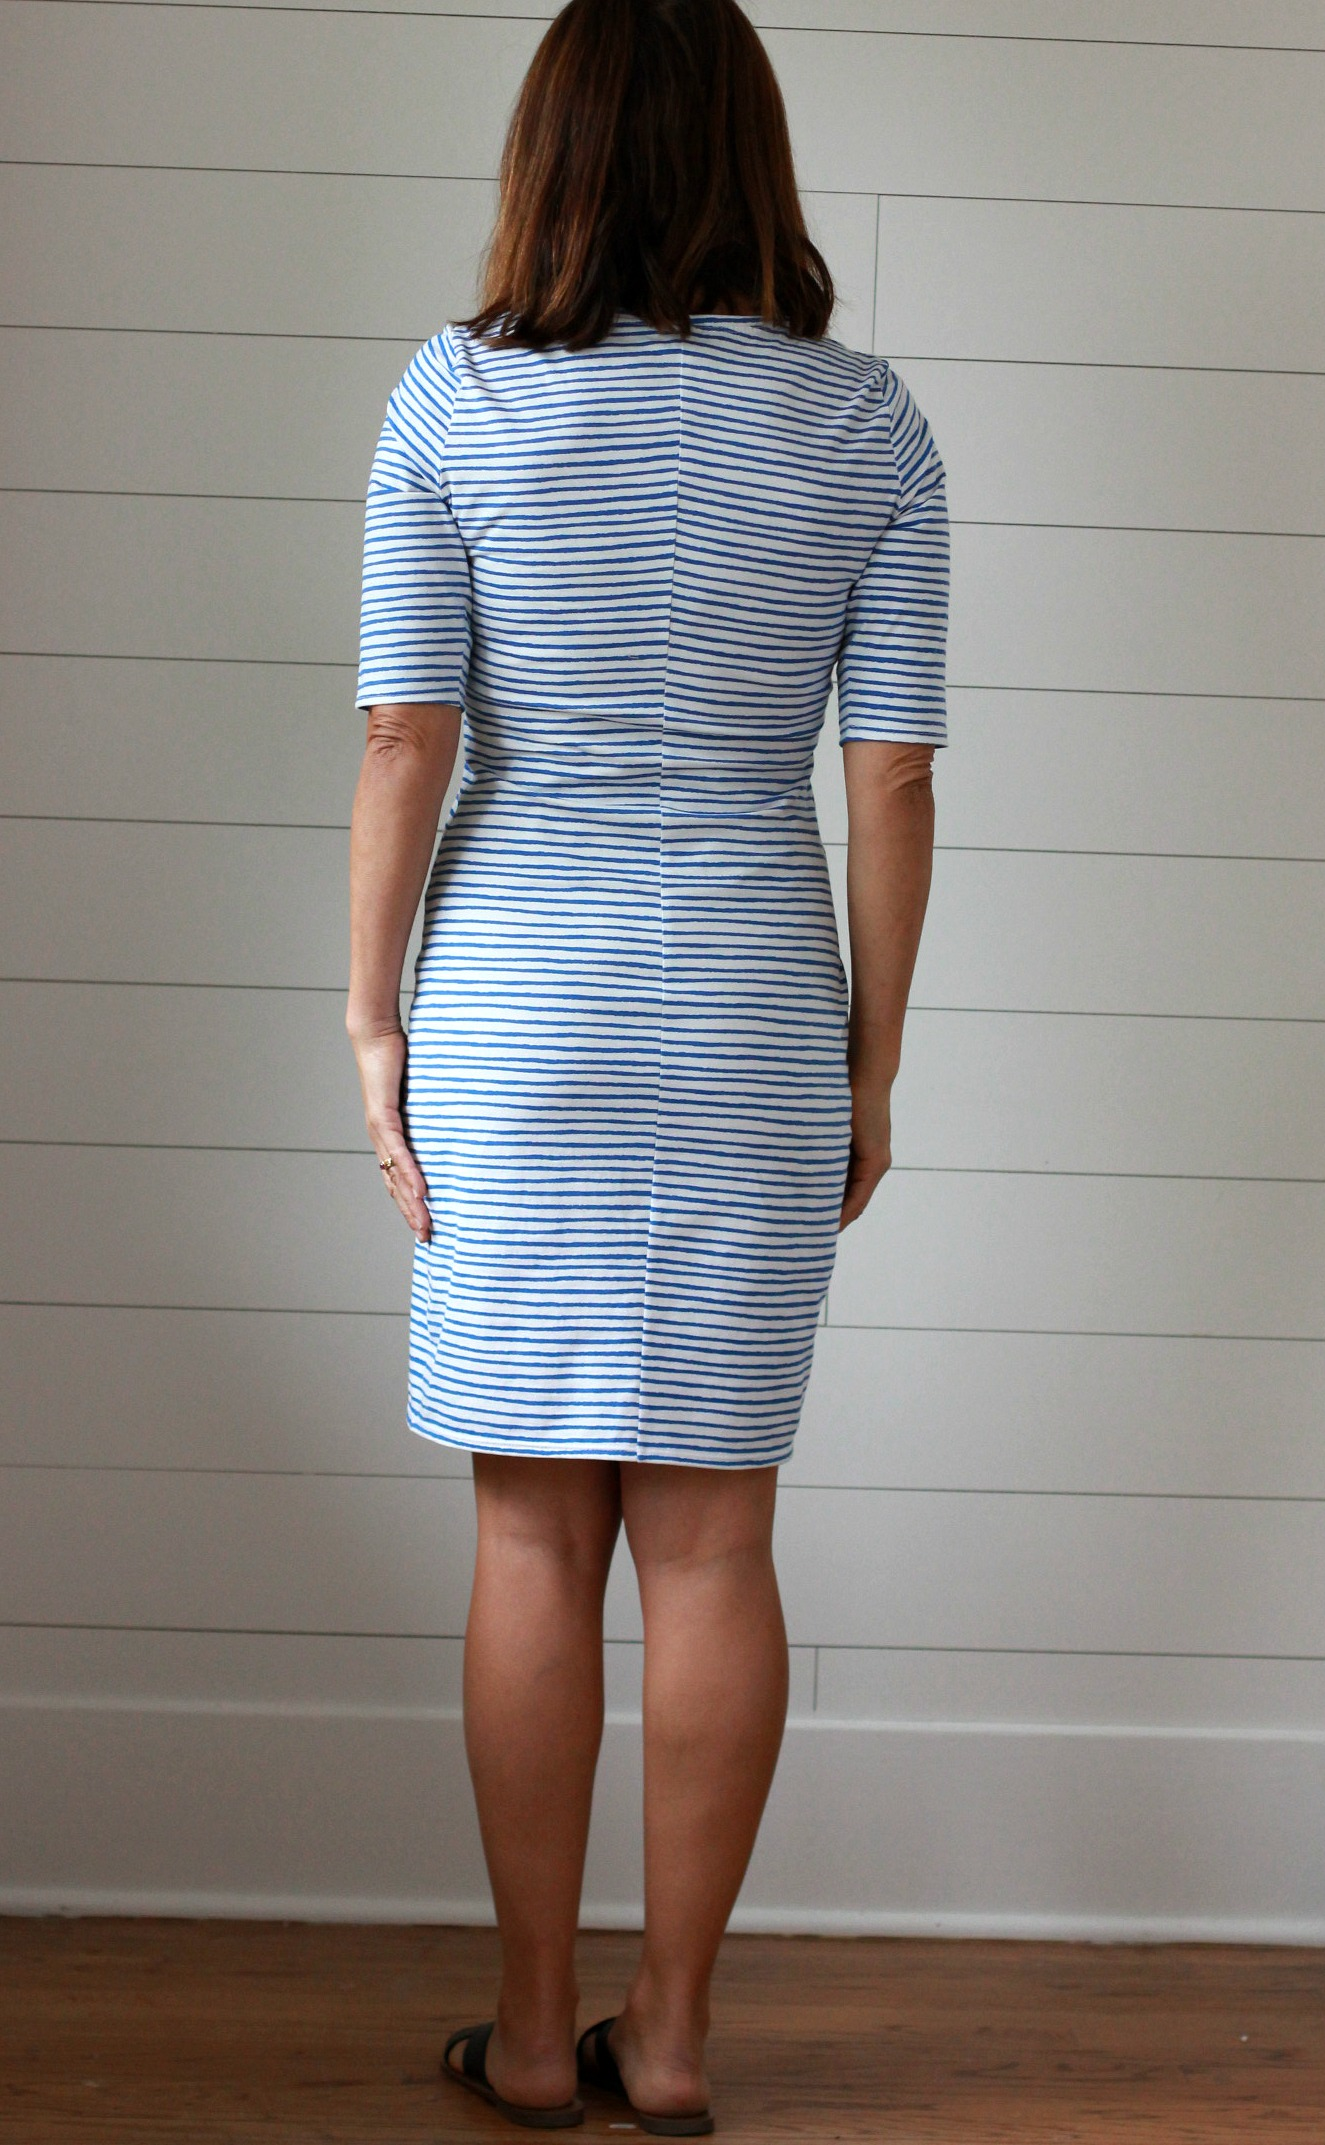 Bootstrap Stretch Dress Sloper With A Lace Up Neck And